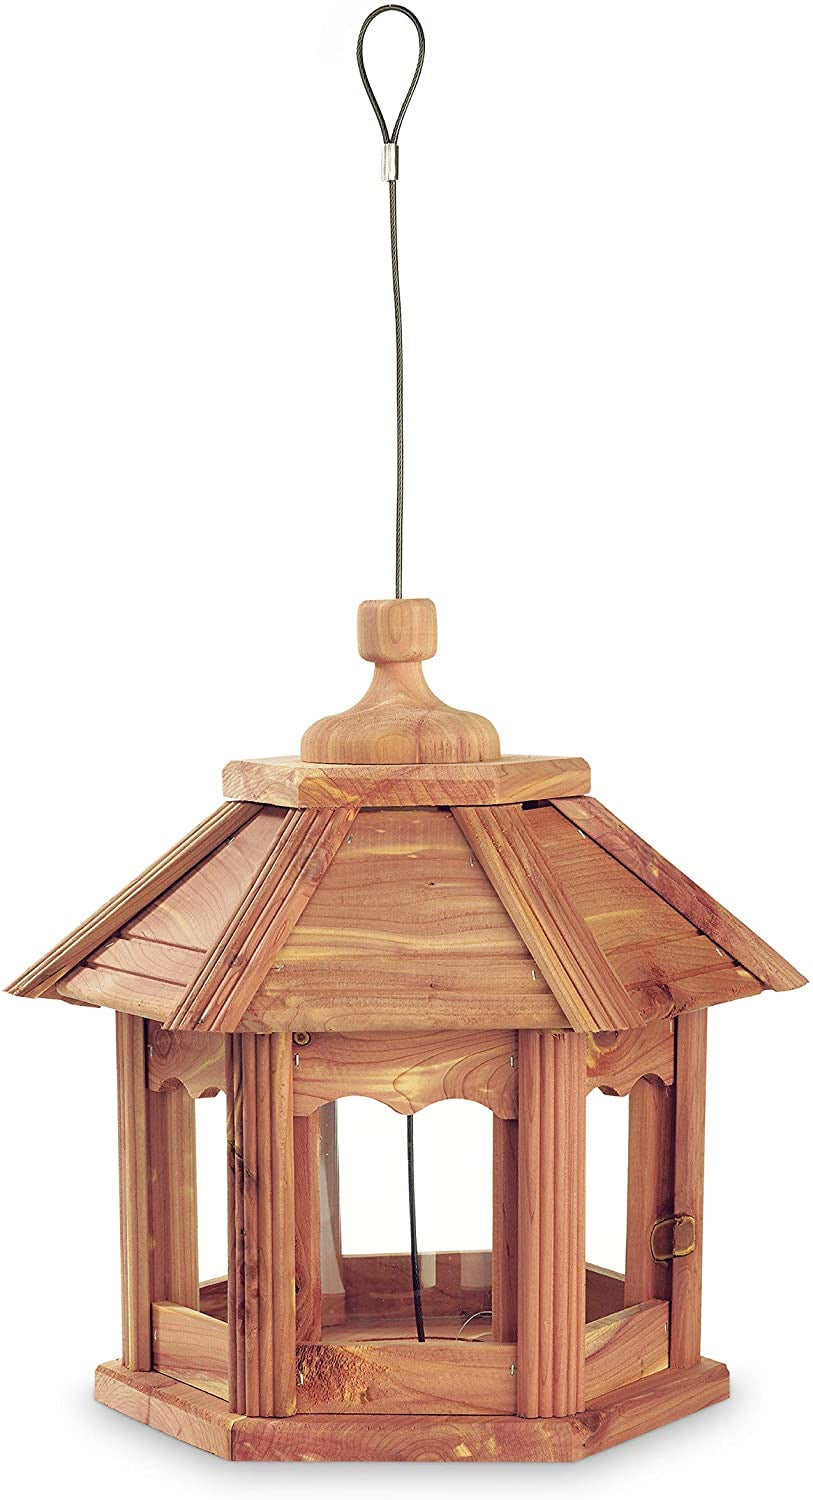 Pennington Ultra Cedar Gazebo Wild Bird Feeder, Holds 3 lbs of seed capacity